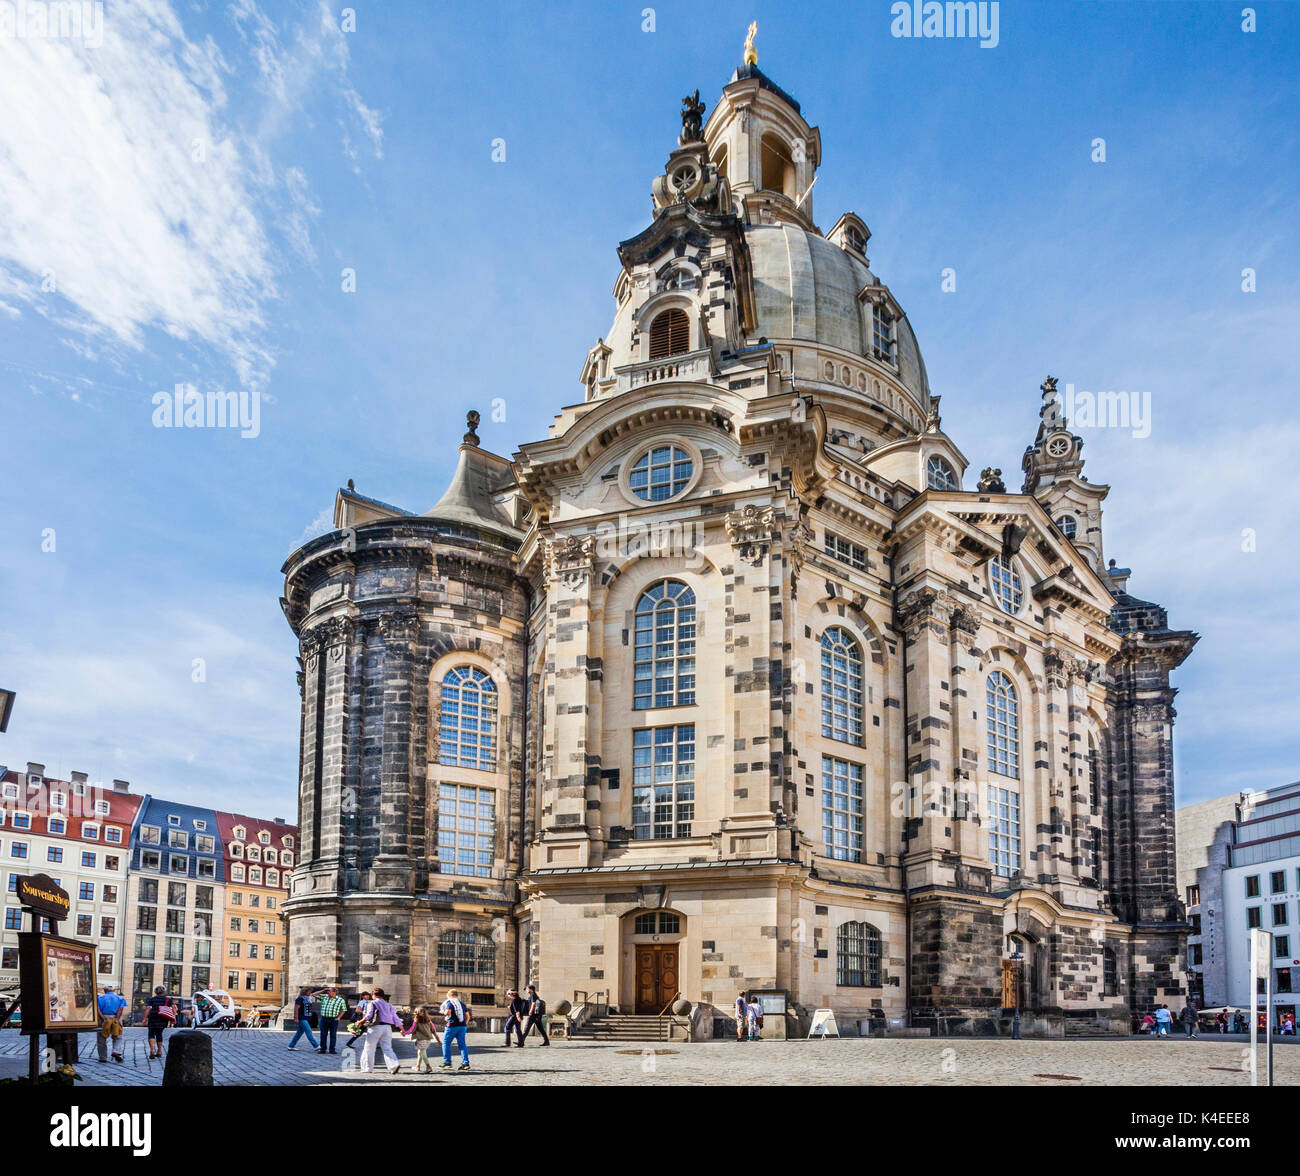 Germany, Saxony, Dresden, Neumarkt Square, view of the baroque sandstone structure of reconstructed Dresden Frauenkirche - Stock Image